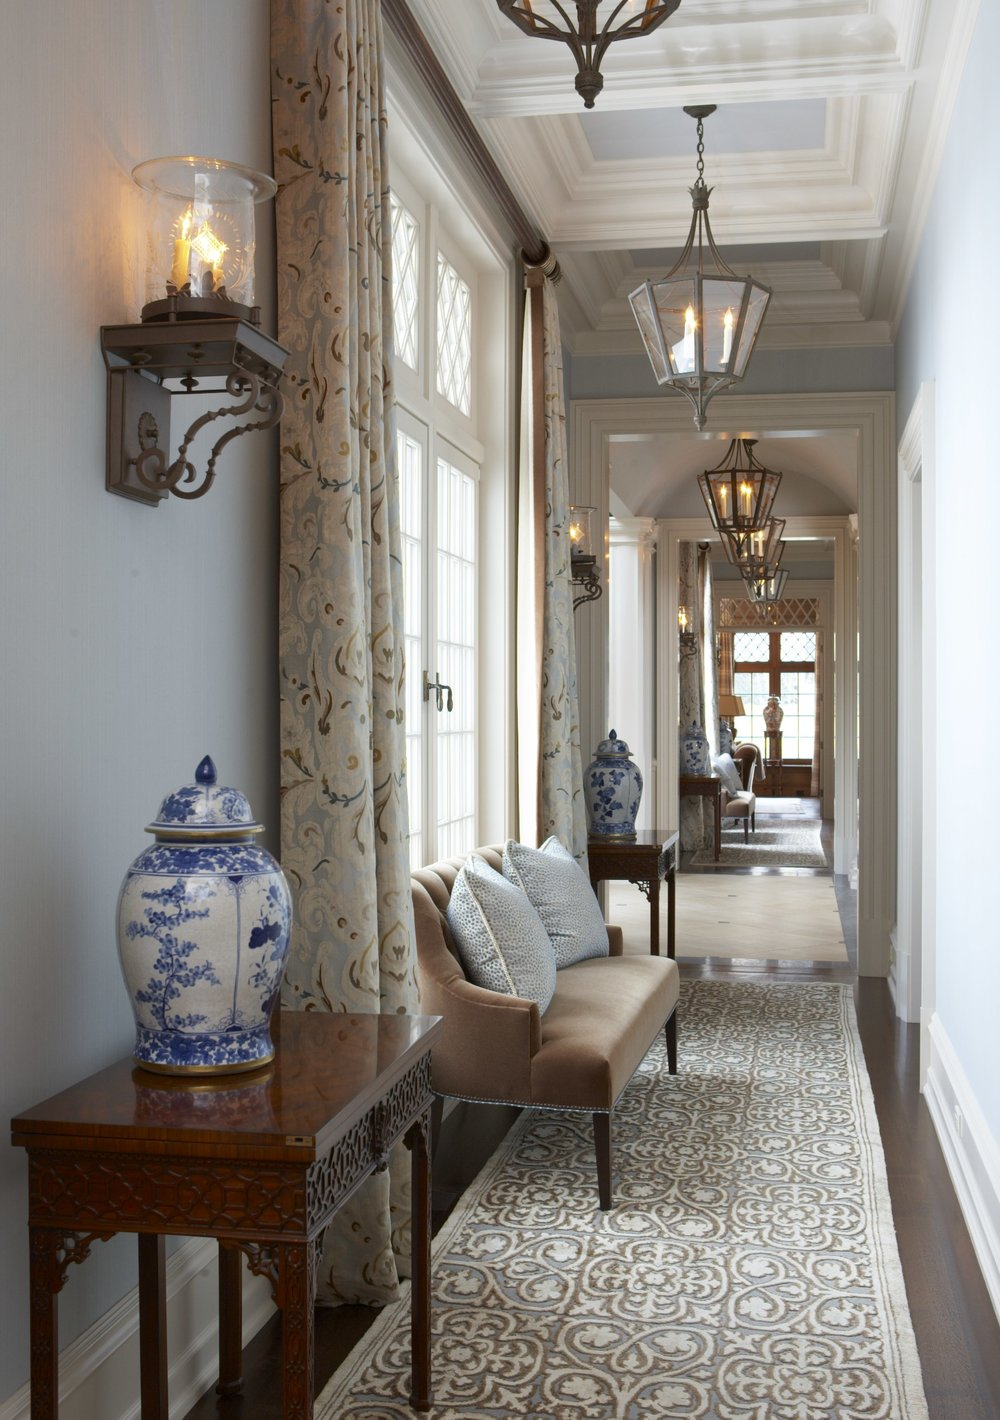 A hallway designed by Cindy Rinfret for a client's home in Greenwich, CT.